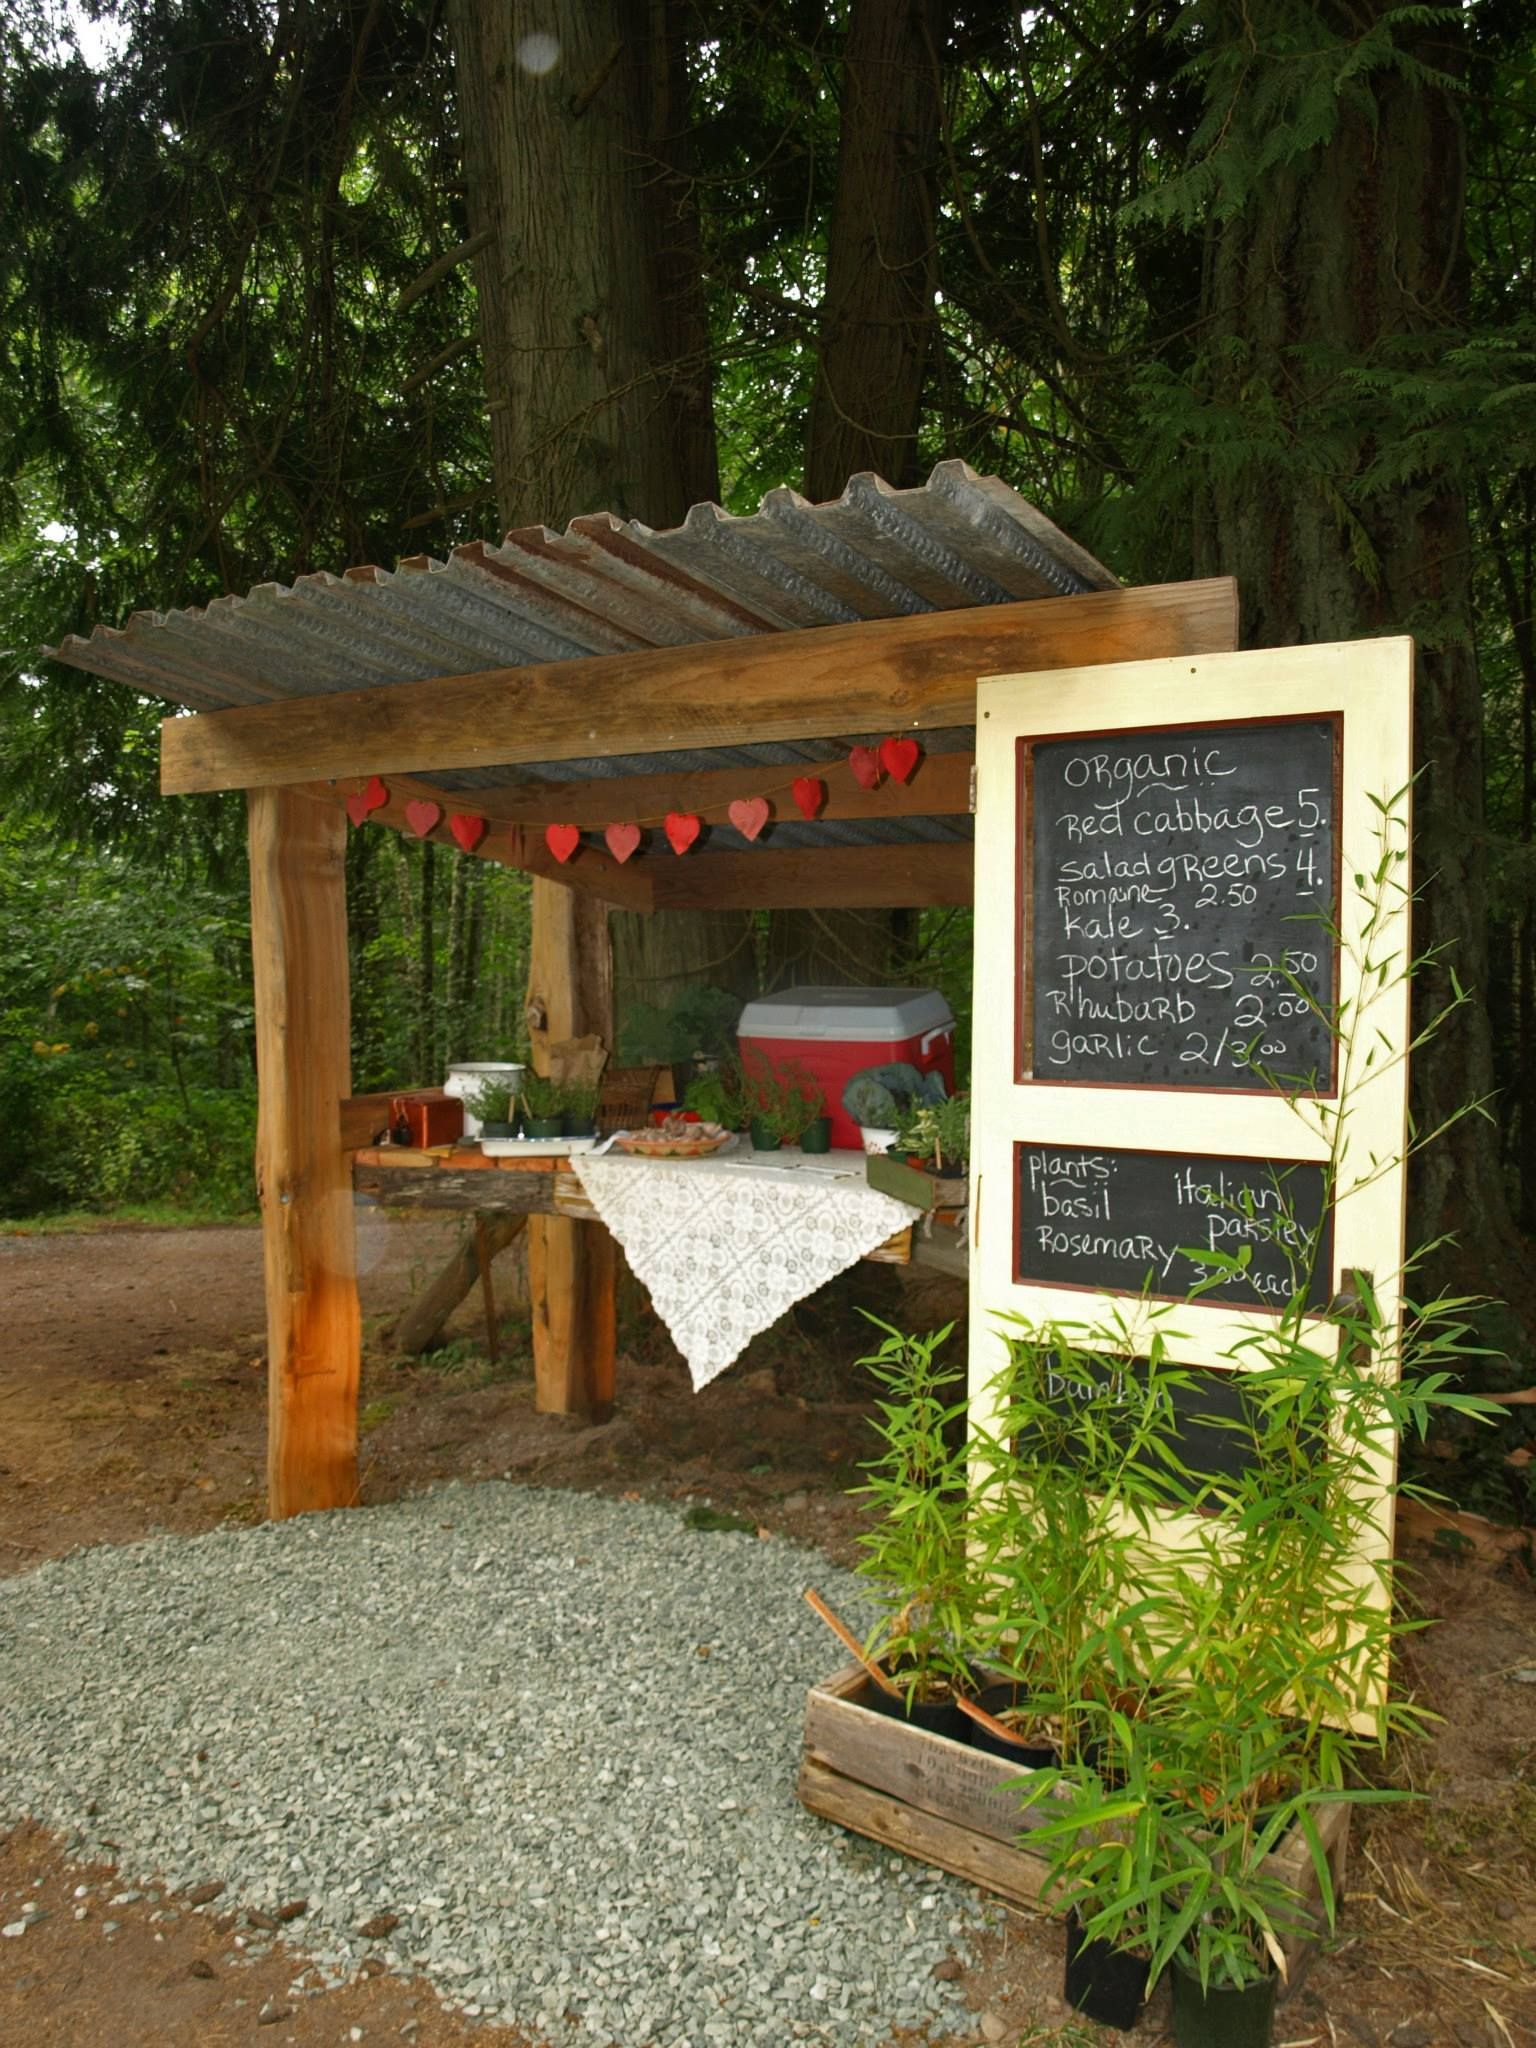 Vegetable Stand Designs : Awesome farm stand ideas lavender farm gate farm stand